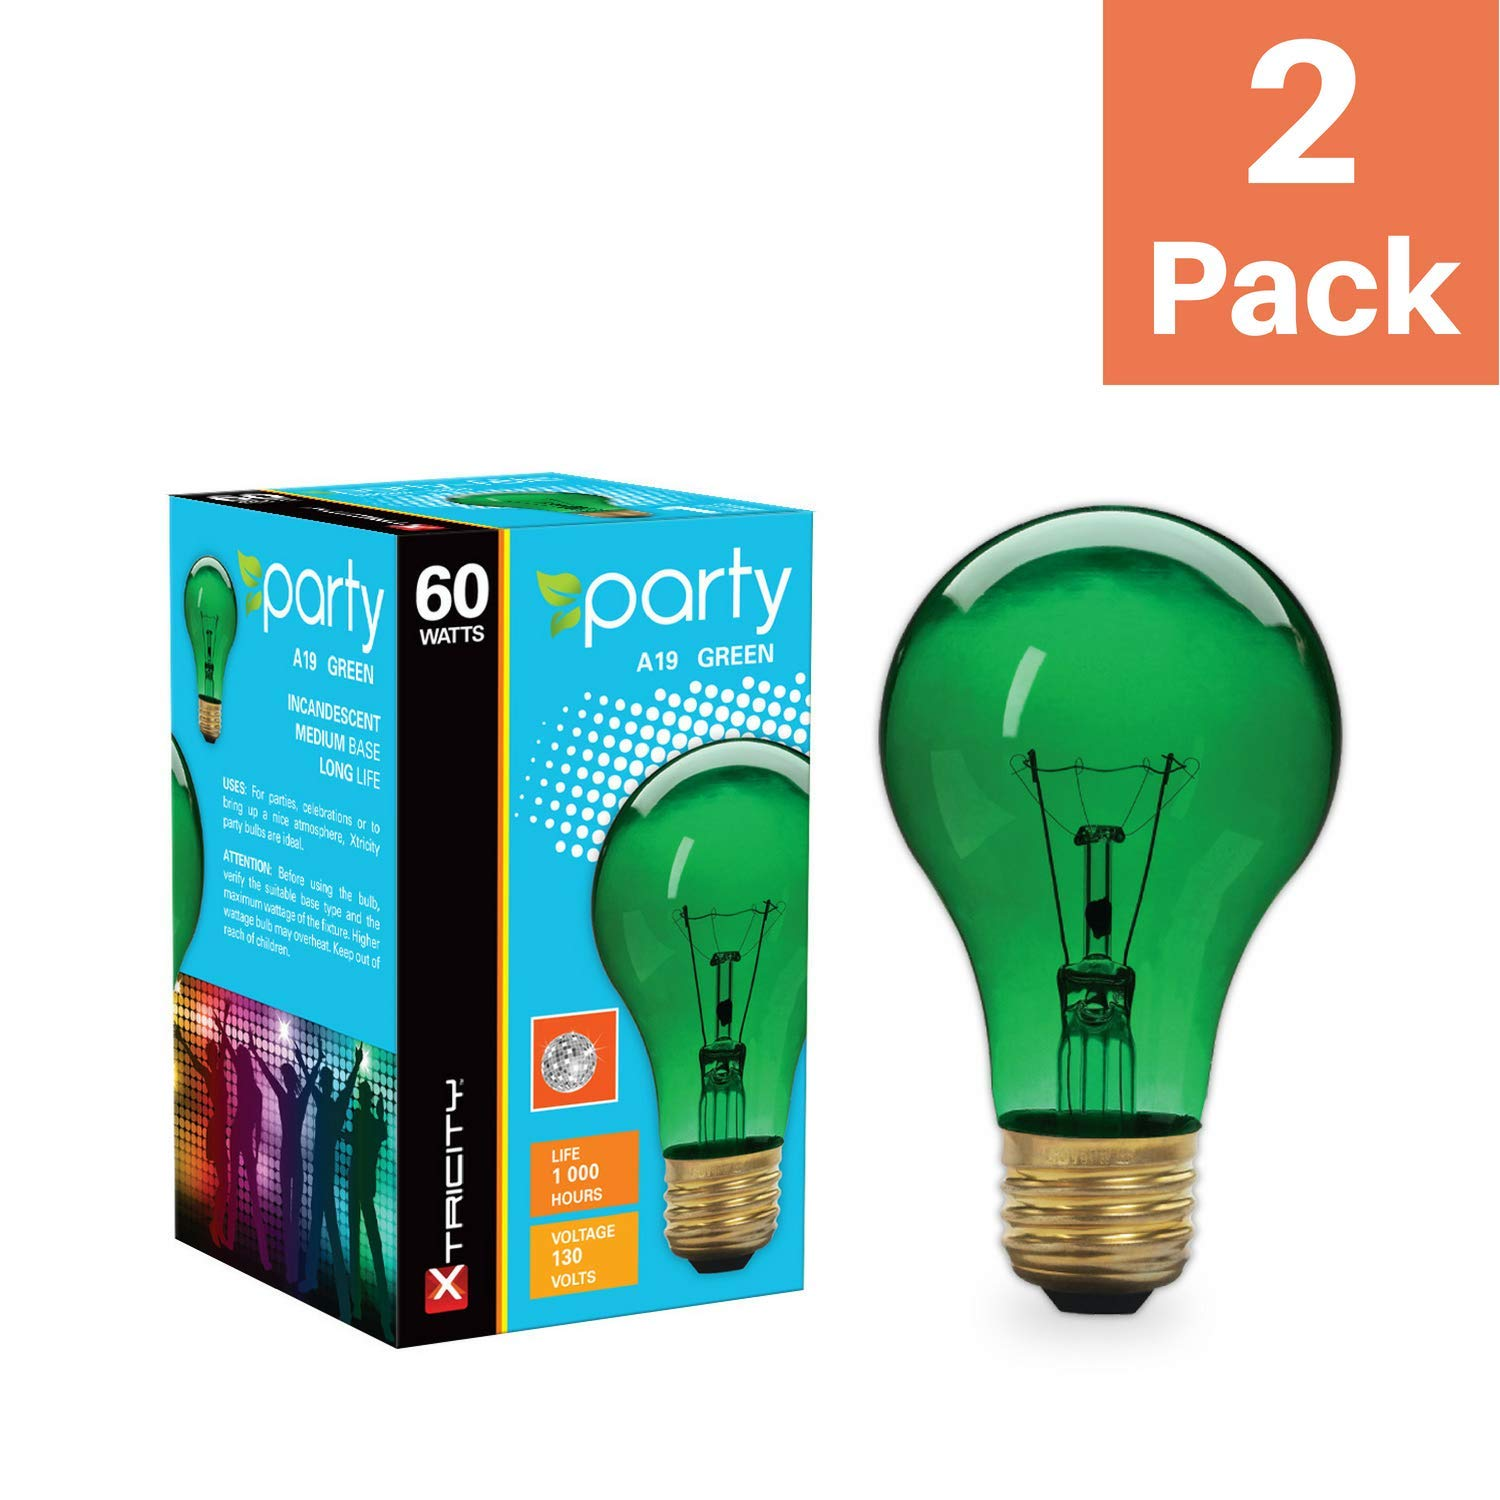 2 Pack Xtricity A19 Incandescent Colored Light Bulb 60W E26 Medium Base Green 130V